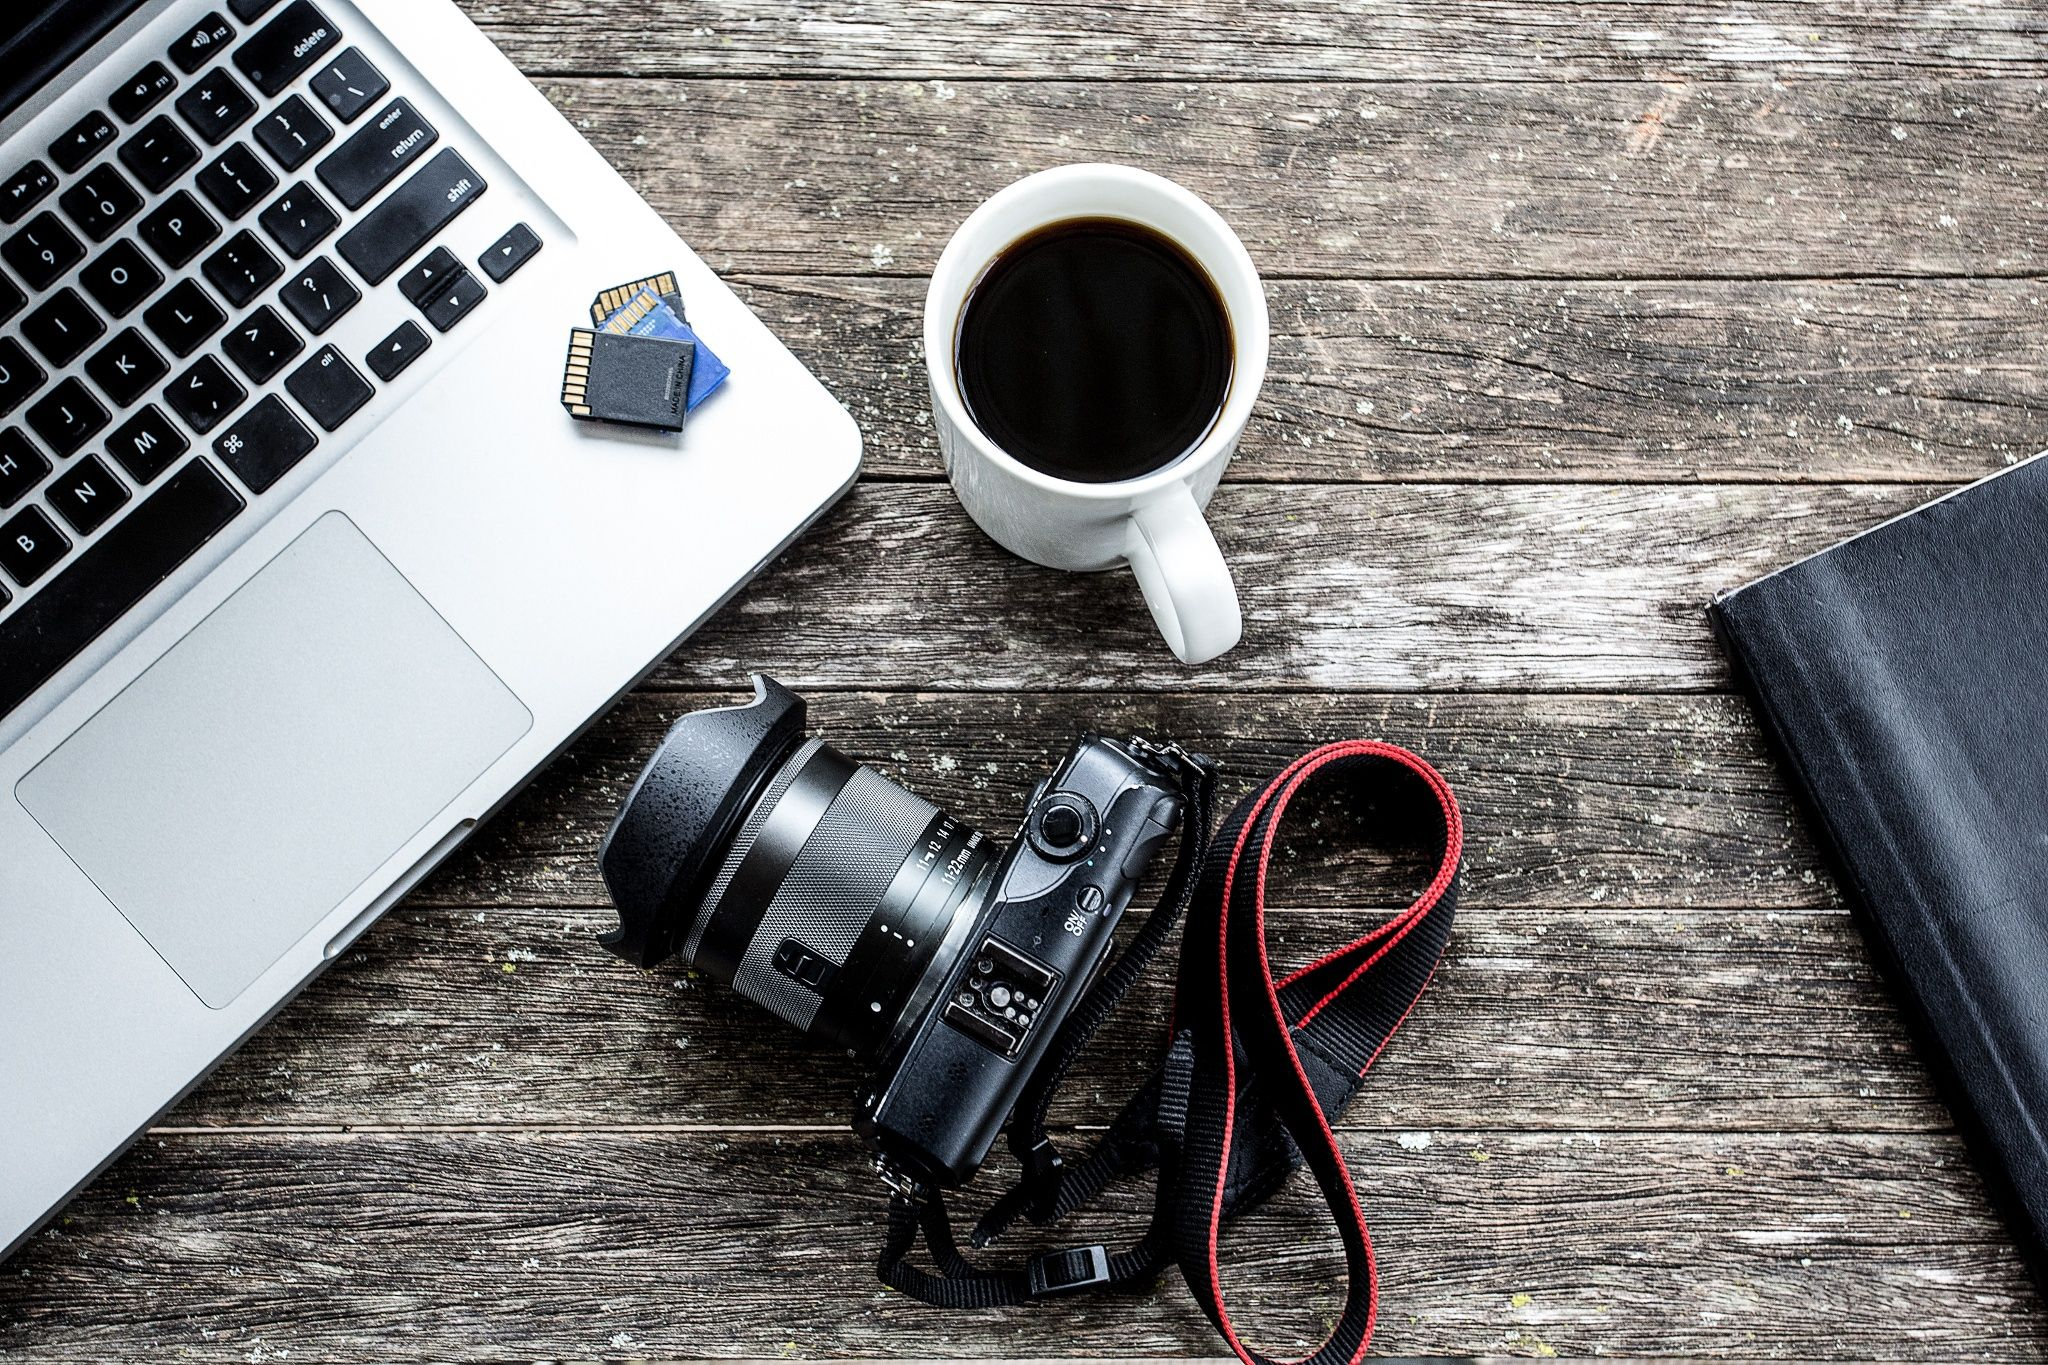 Laptop With Digital Camera And A Coffee Cup Laptops For Photographers Coffee Cups Coffee